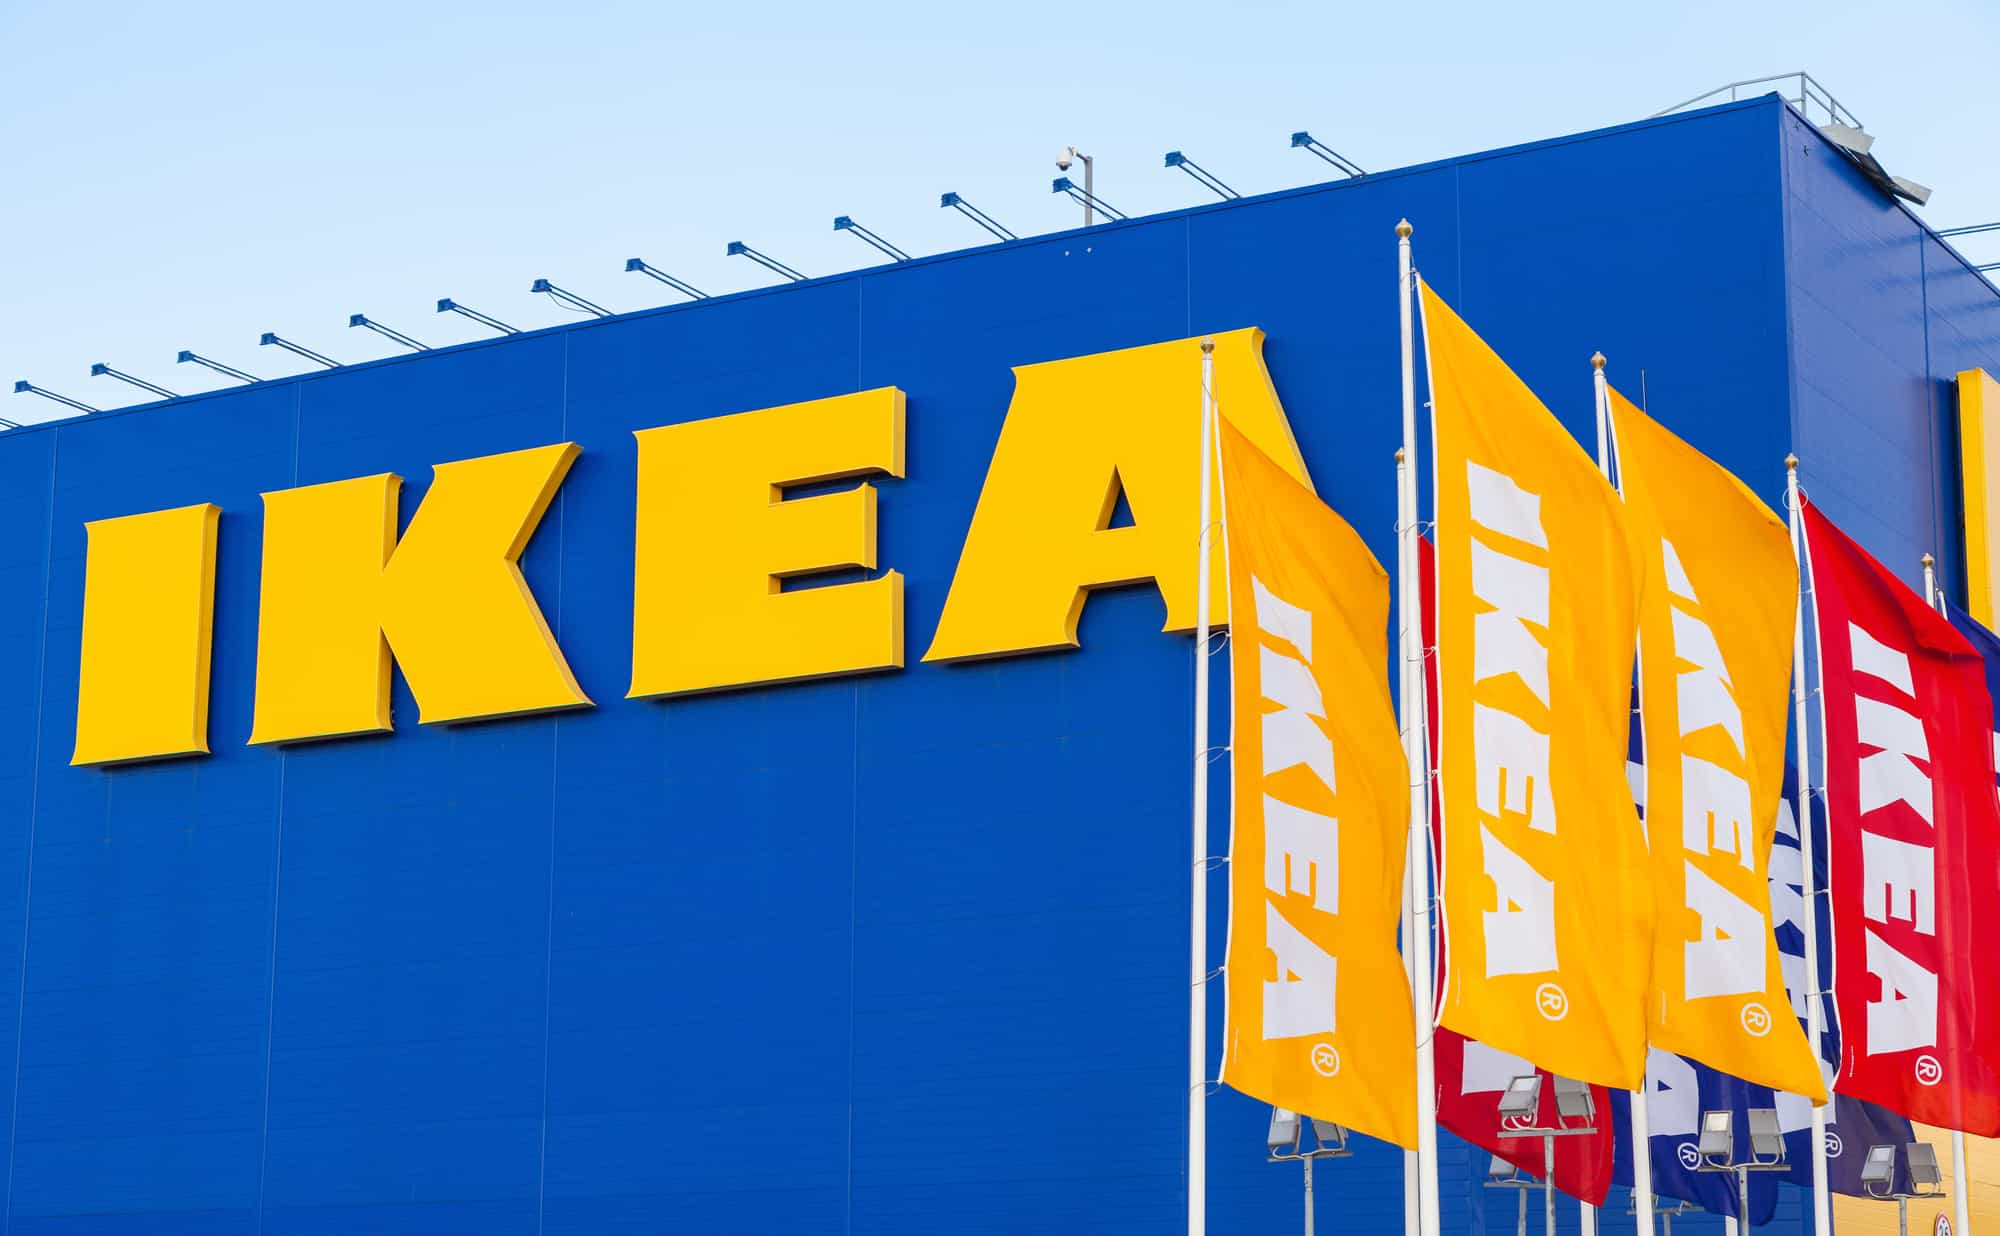 Move of the Week: New Ikea boss joins a transforming retailer